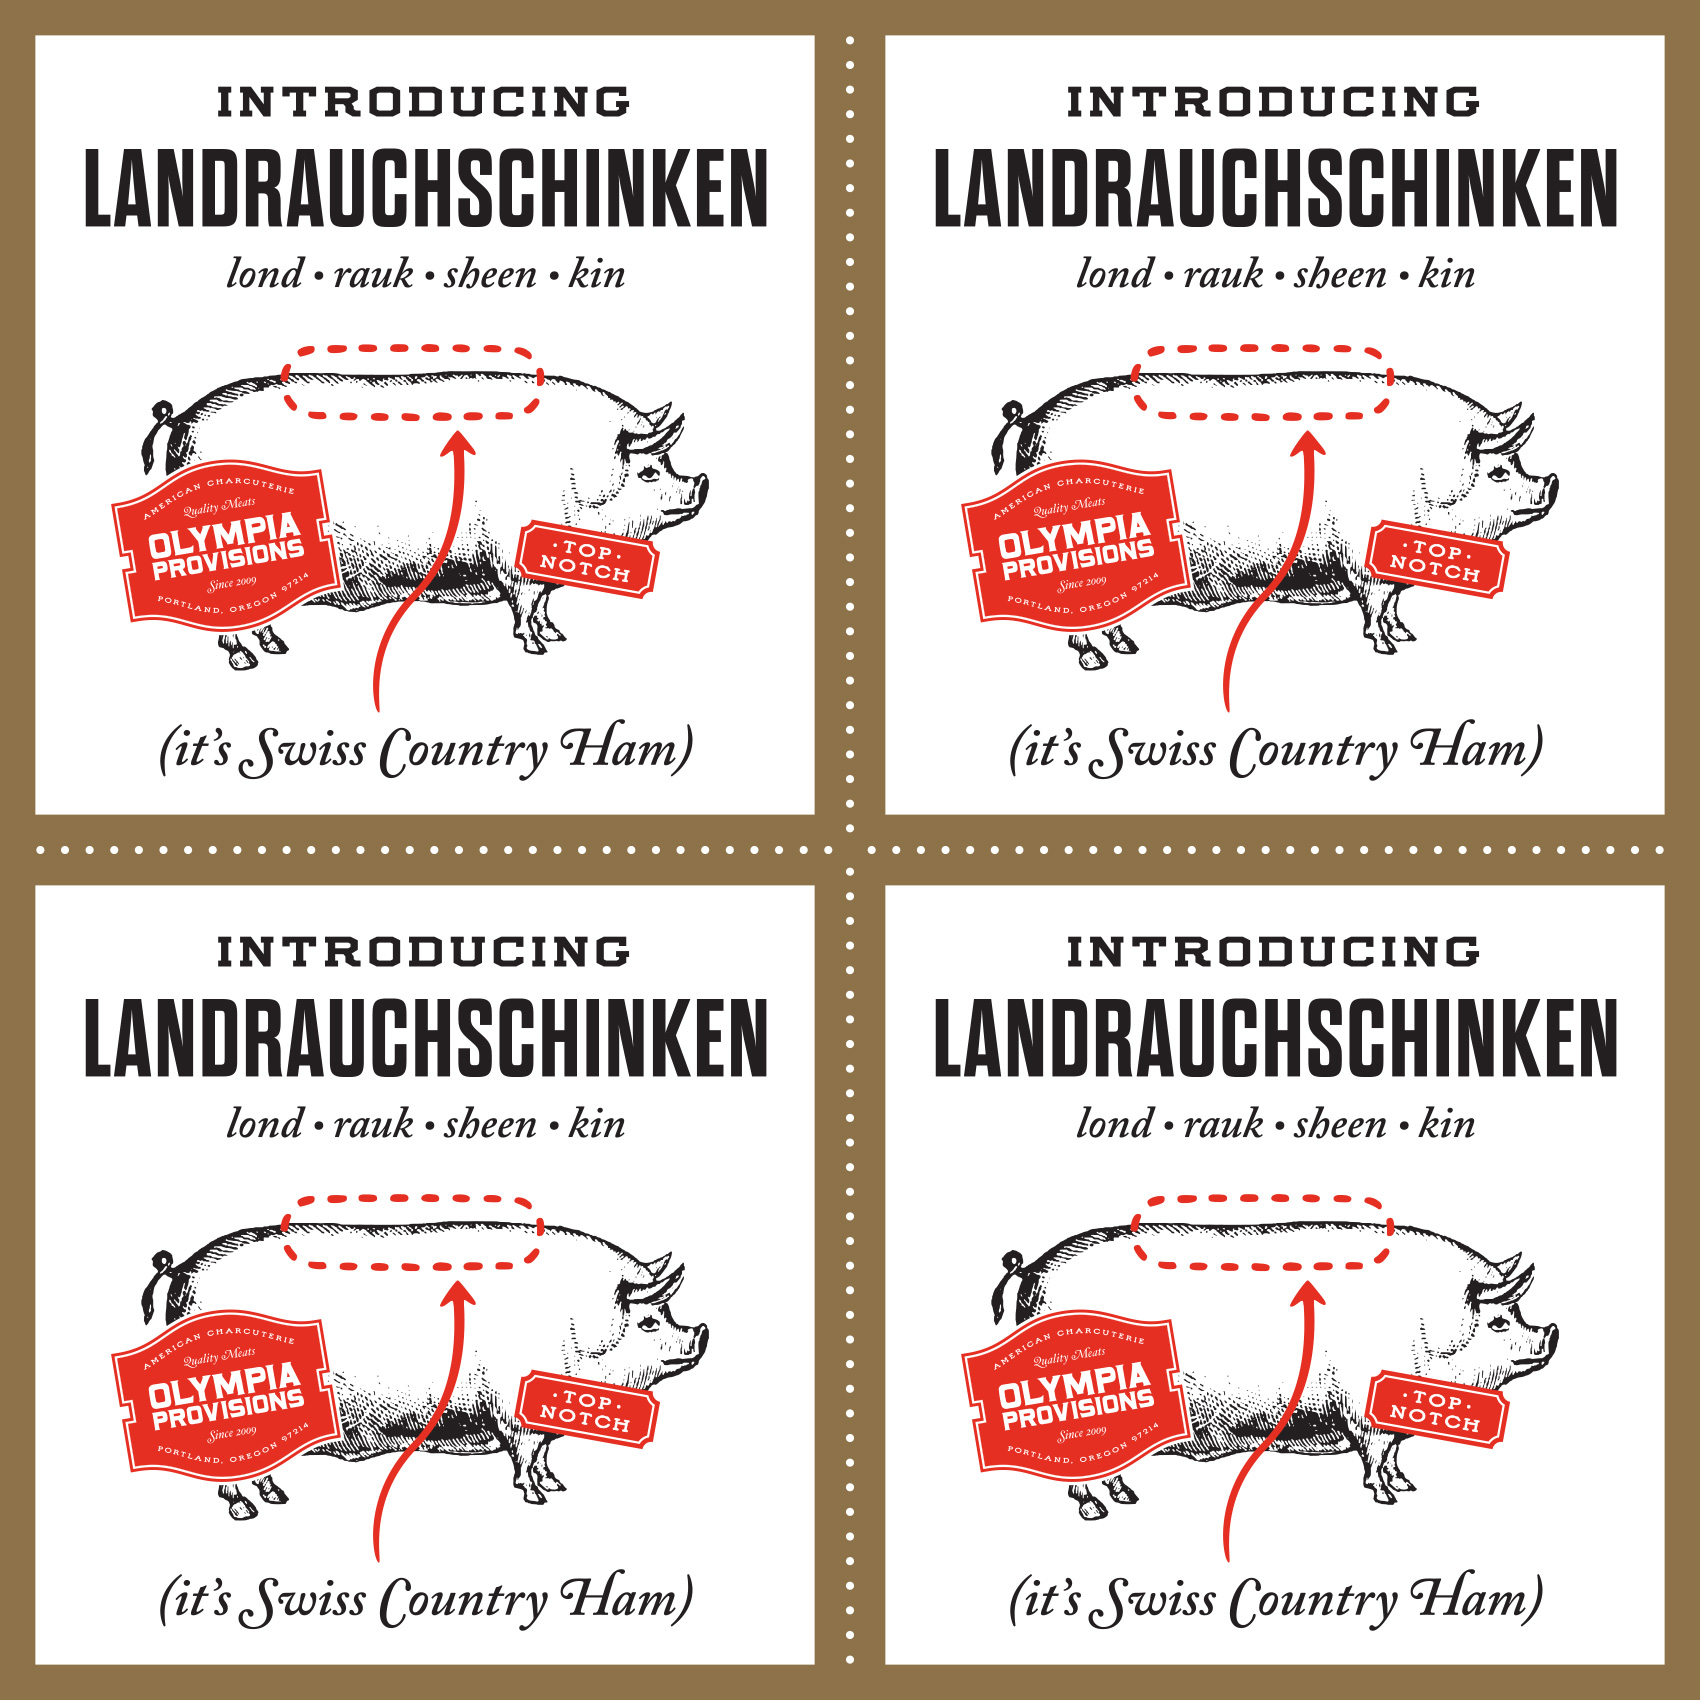 Vintage etched illustration of a pig for Olympia Provisions Landrauchschinken launch. It's Swiss Country Ham!